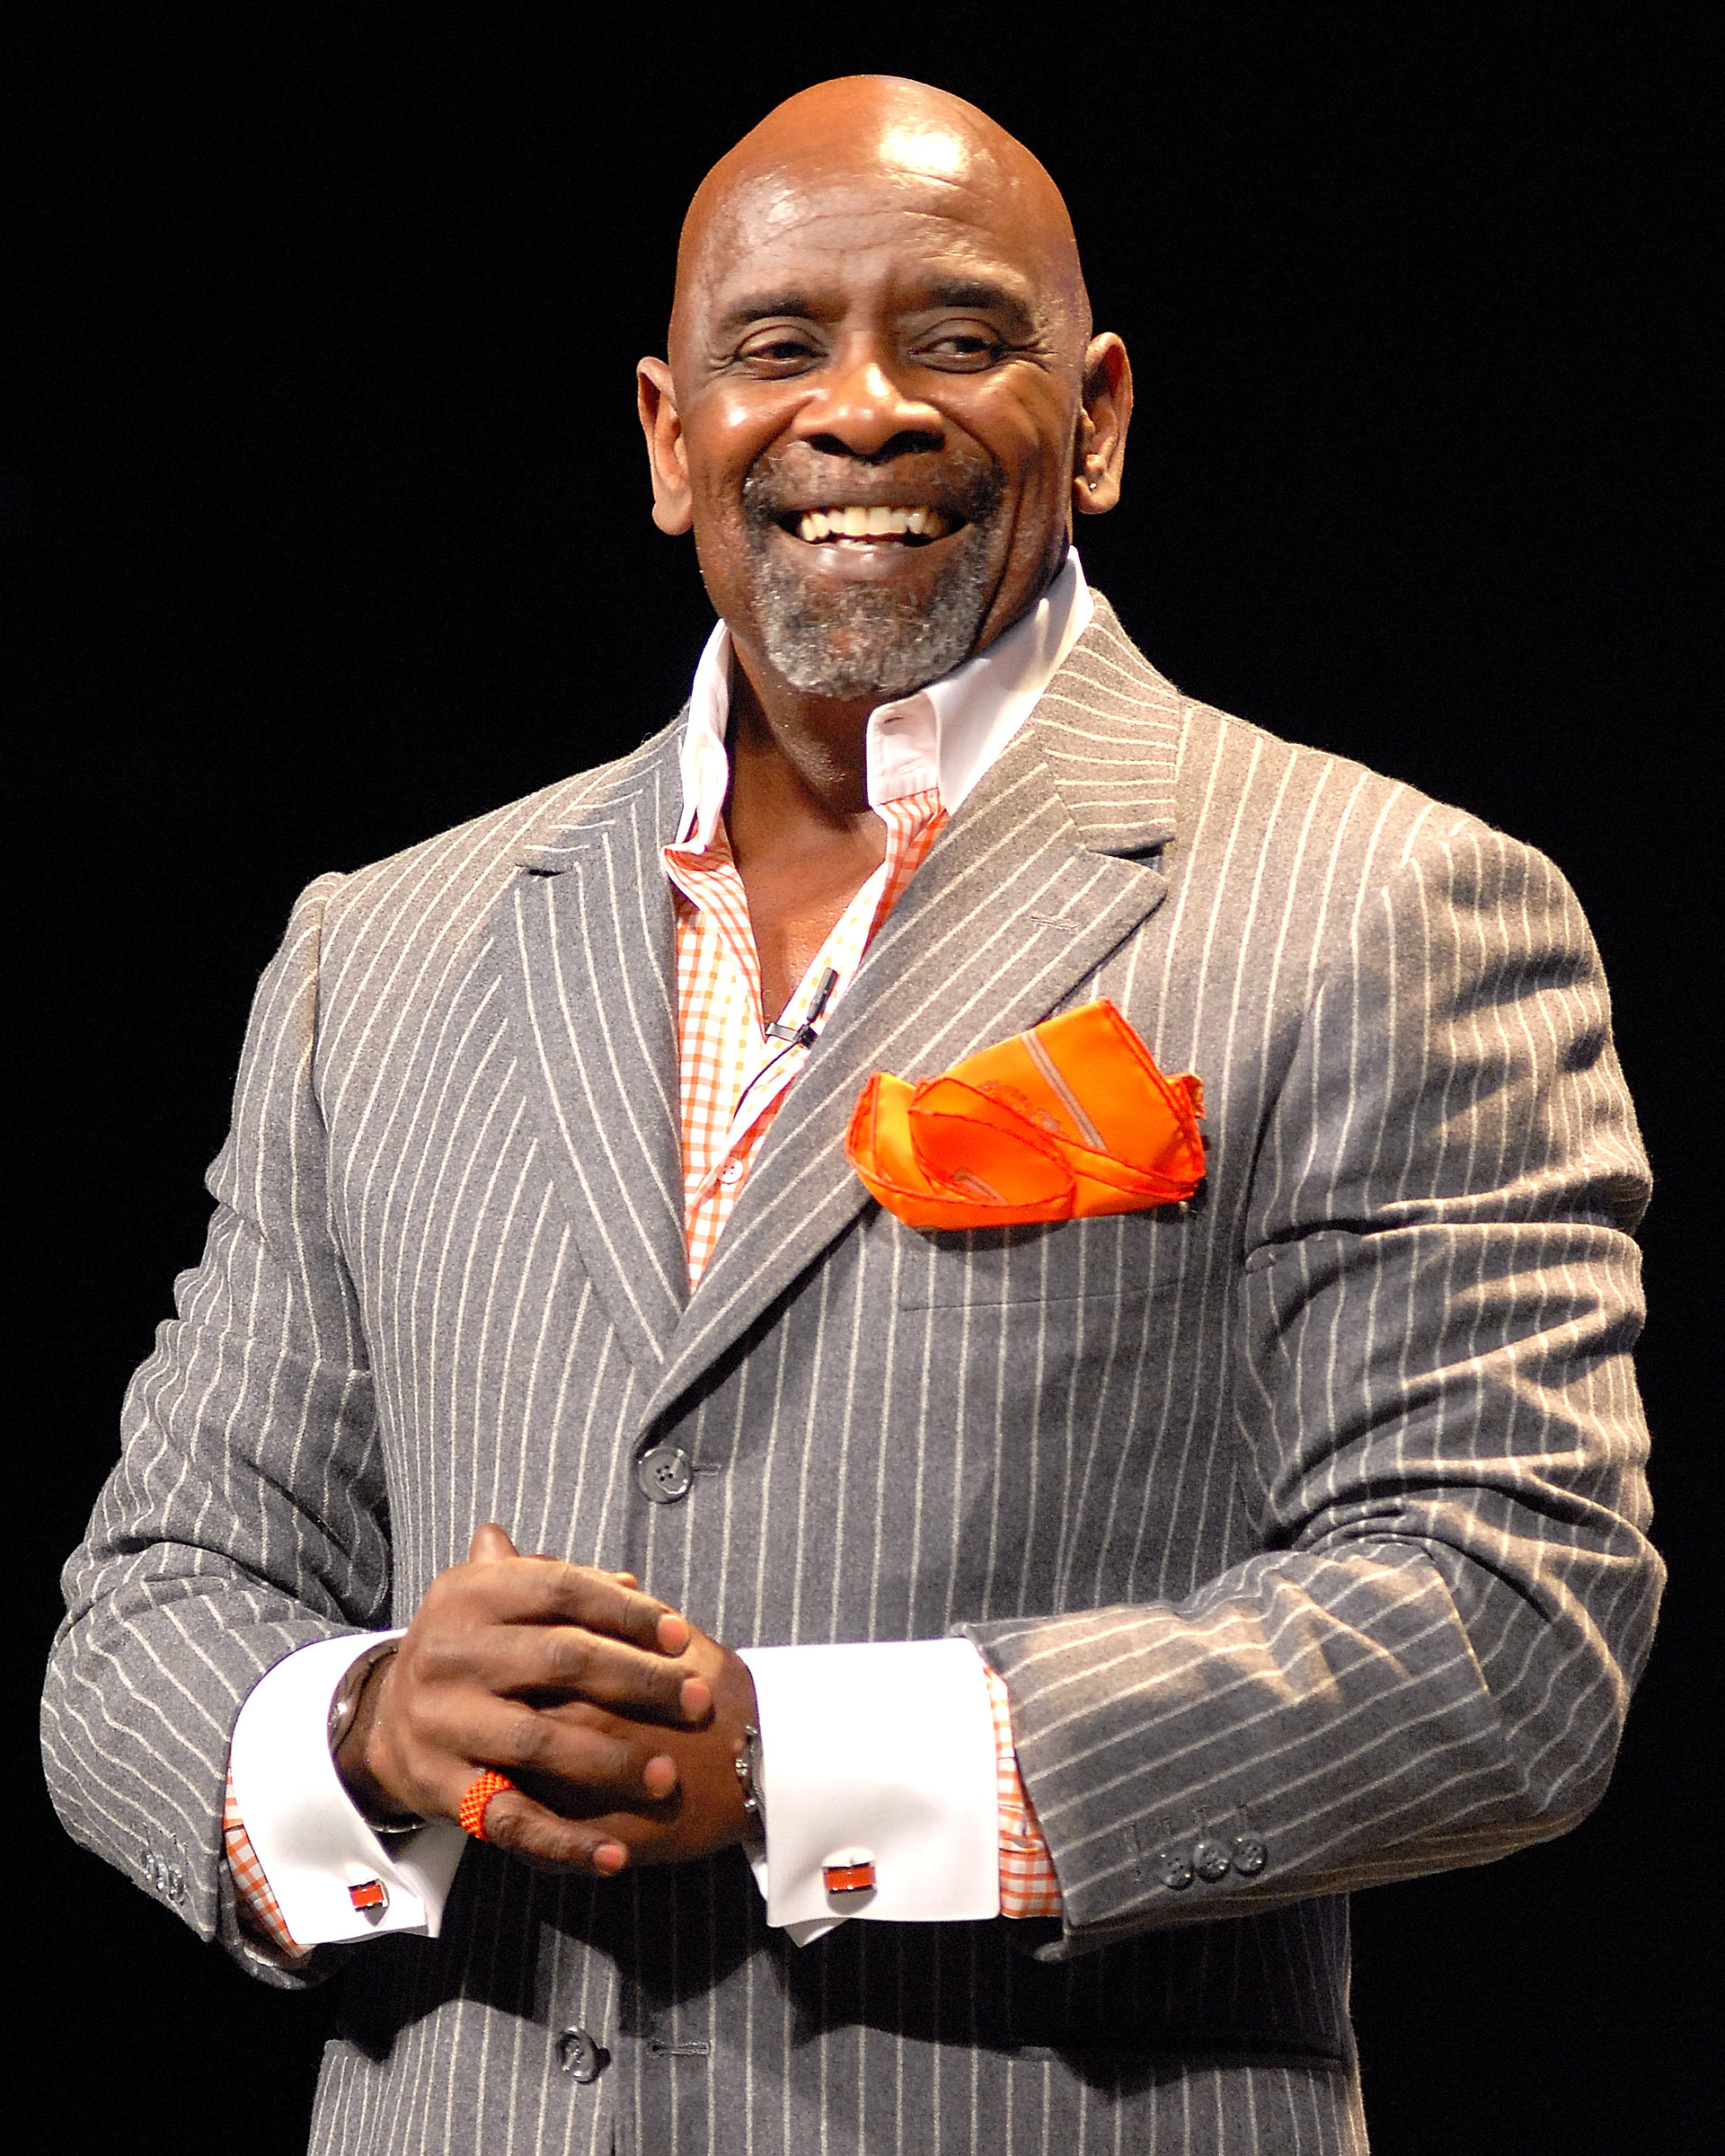 mba case study chris gardner pursuit Mba case study chris gardner pursuit of happiness essay 1069 words | 5 pages 2010 the story of chris gardner, a man with vision, a role model to his son and a classical example of how a homeless man with a child can exert himself from being poor to become one of the most outstanding man who.